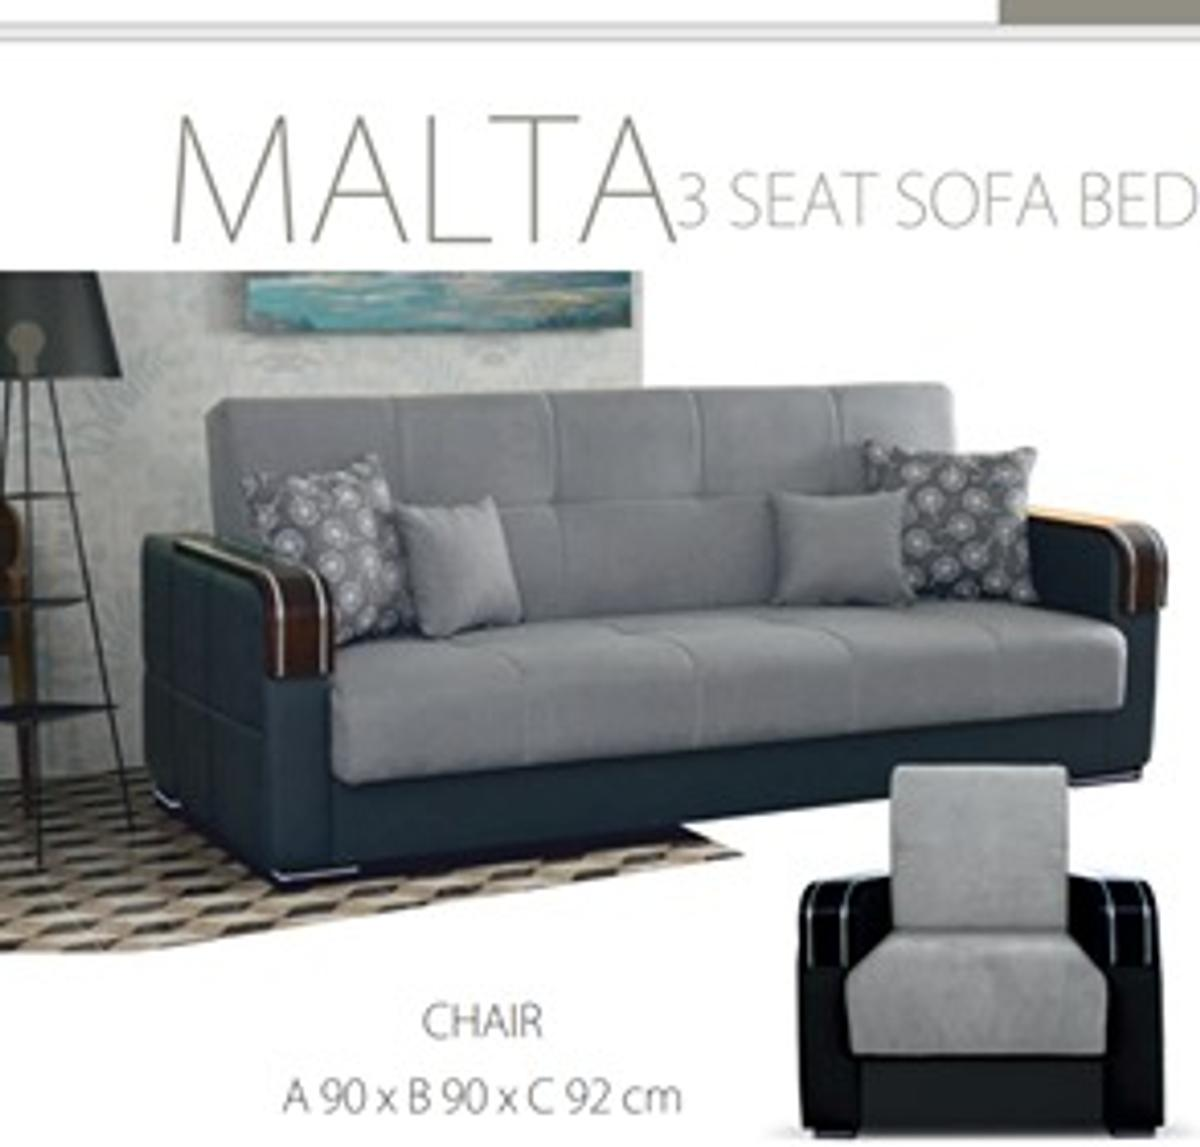 Fine Malta 32 Seater Sofa Bed In E1 0Aj London For 219 00 For Creativecarmelina Interior Chair Design Creativecarmelinacom